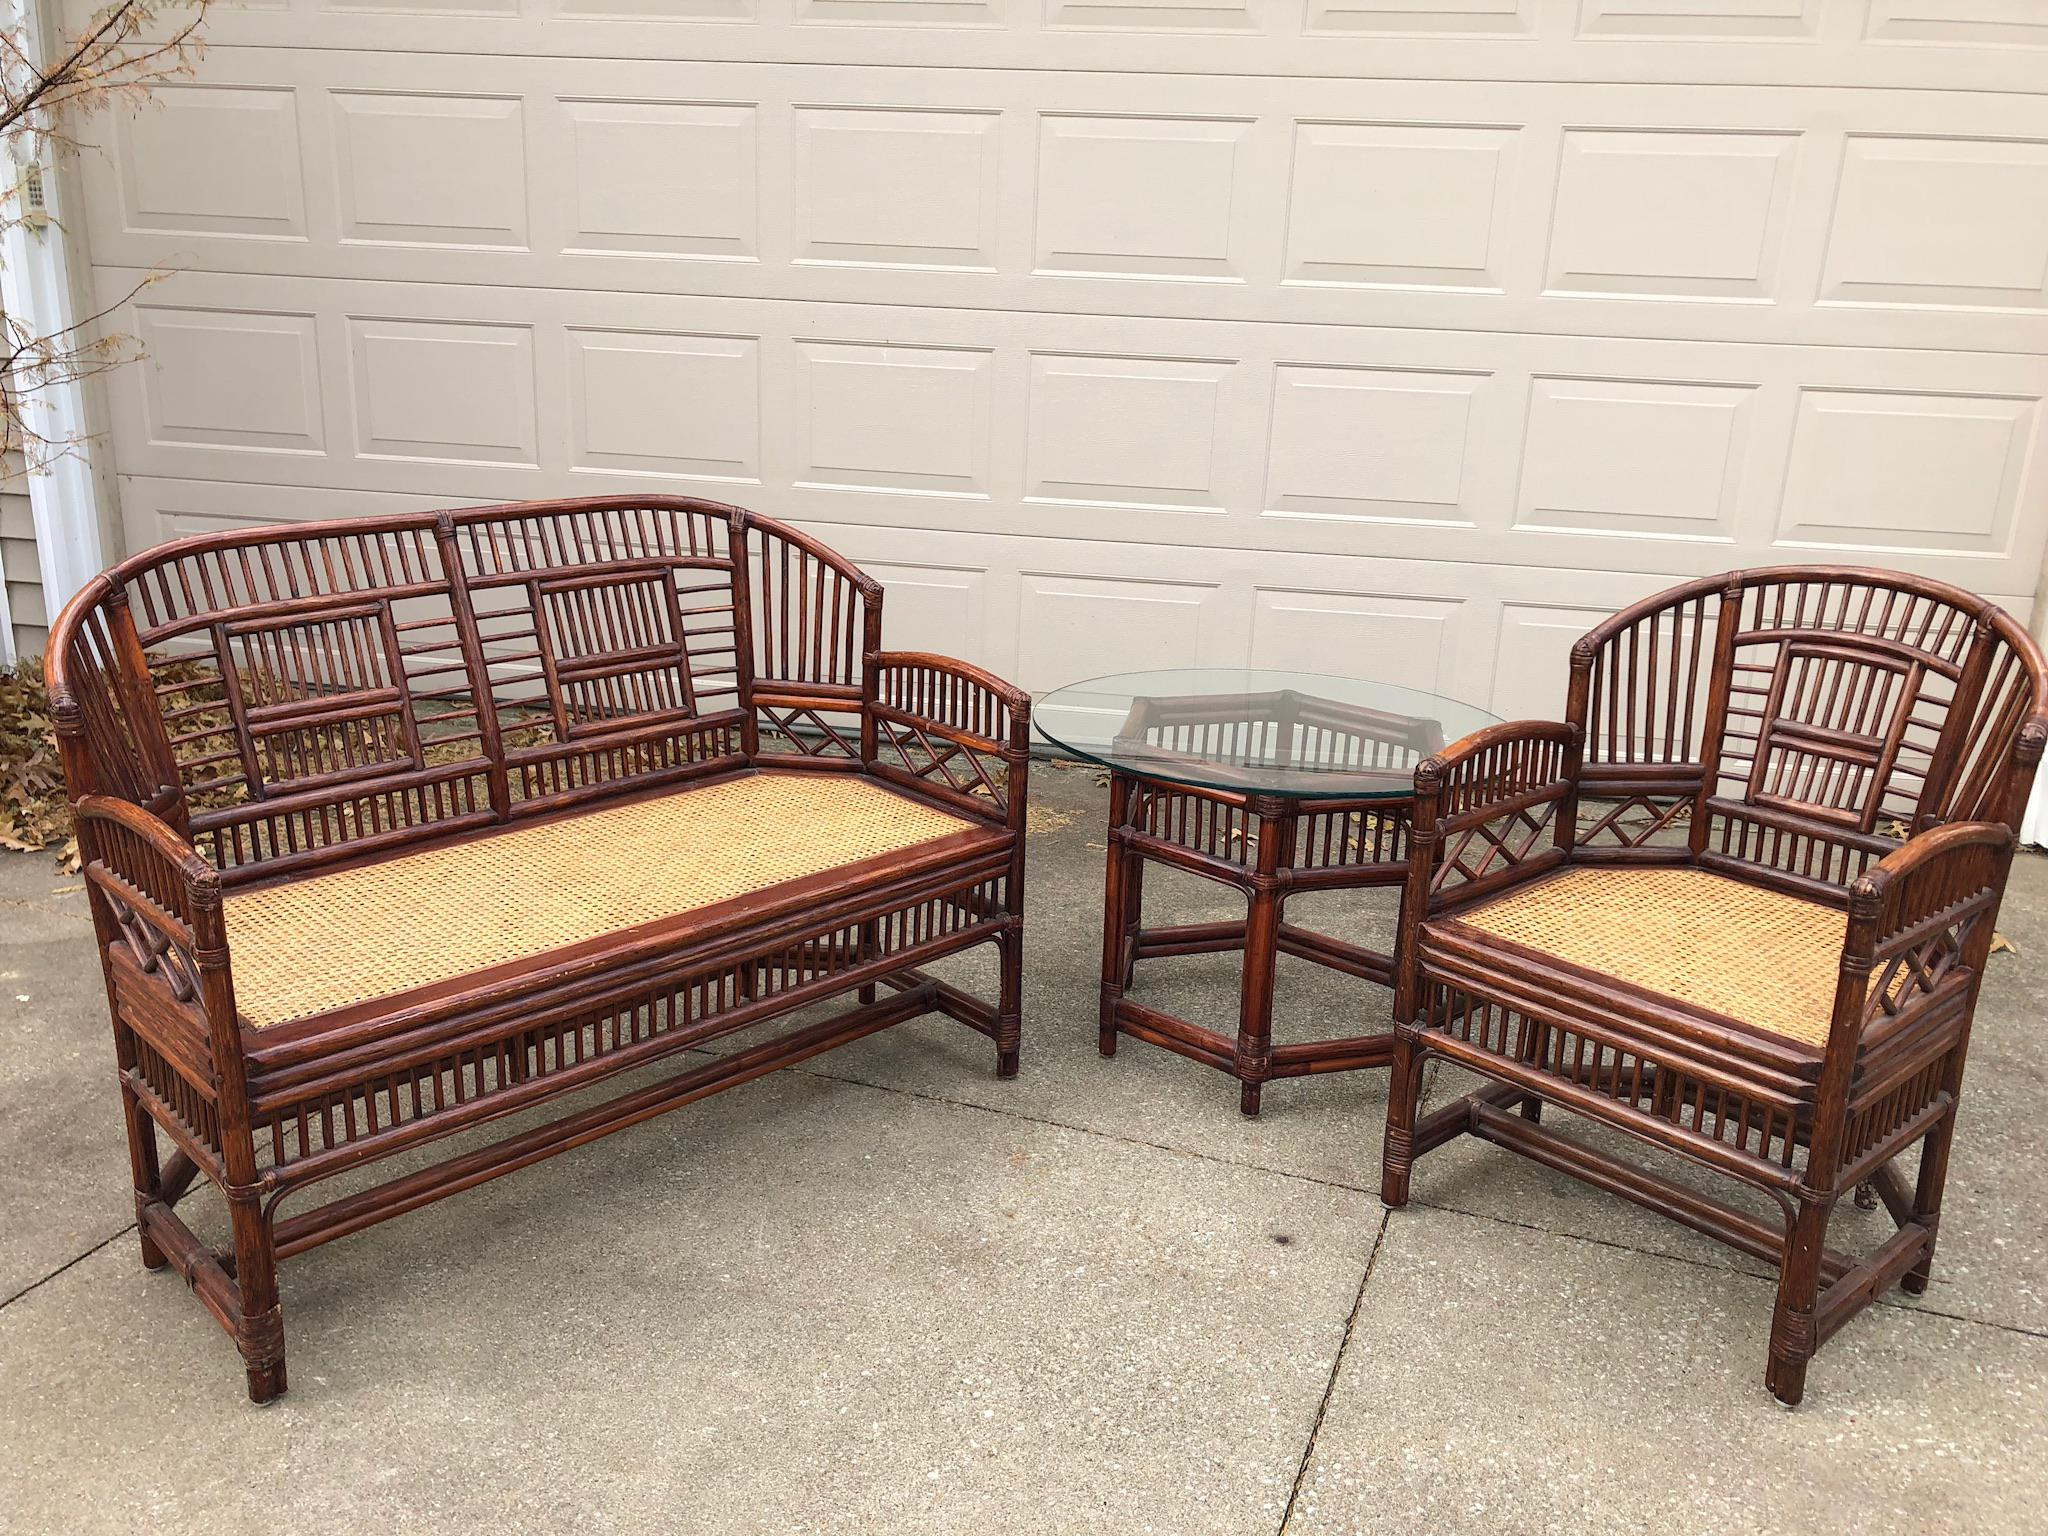 Vintage Brighton Bamboo Wicker Furniture Sofa   Set Of 3   Image 2 Of 11